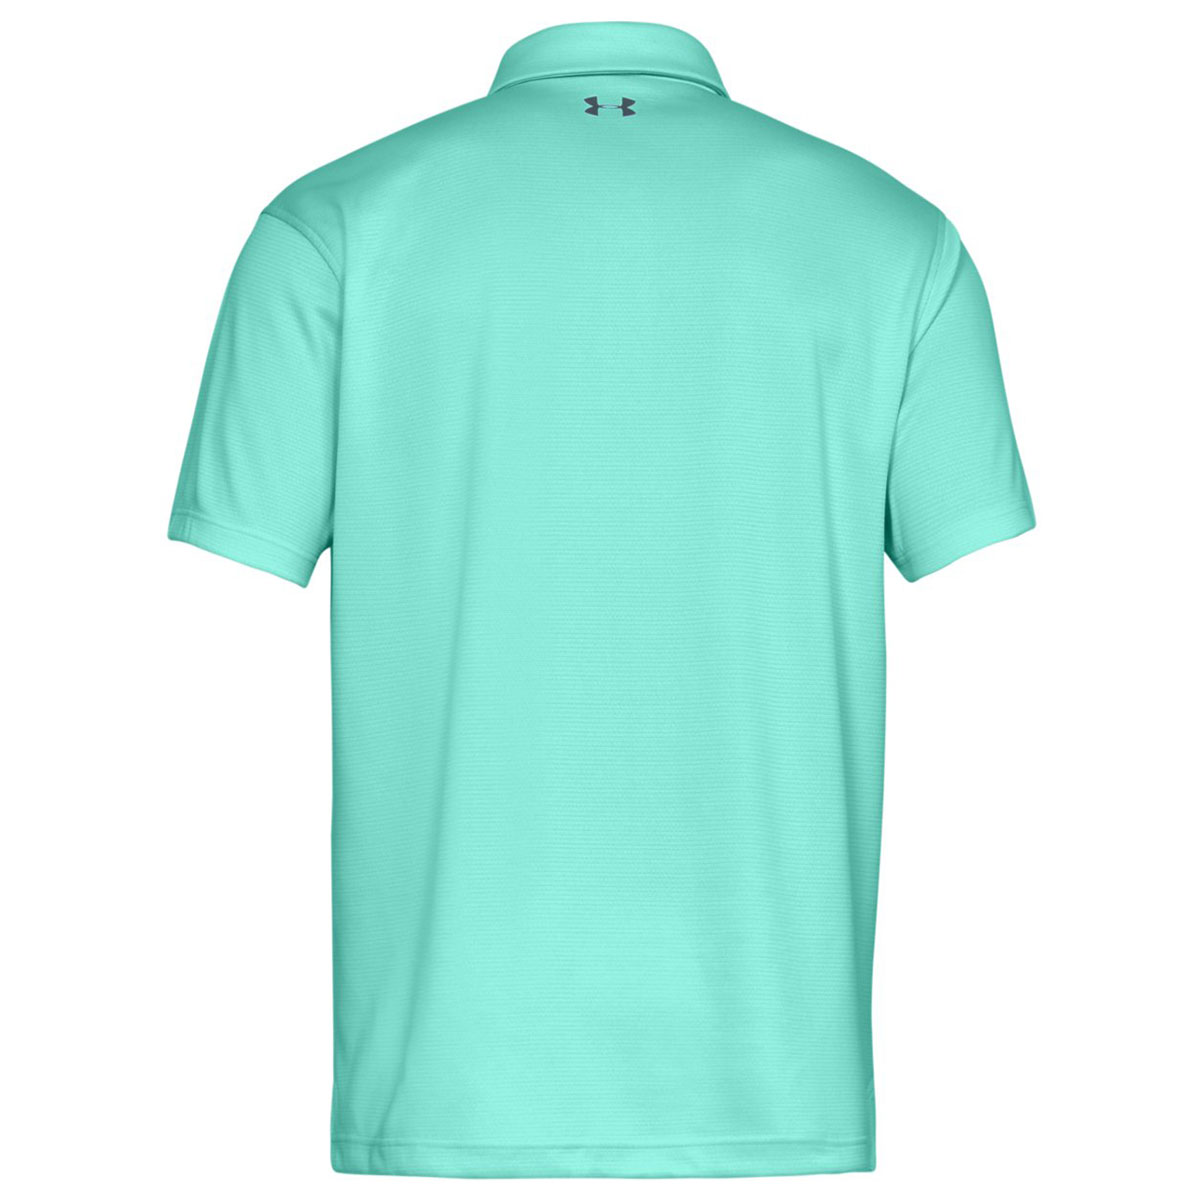 Under-Armour-Mens-Golf-Tech-Wicking-Textured-Soft-Light-Polo-Shirt thumbnail 59